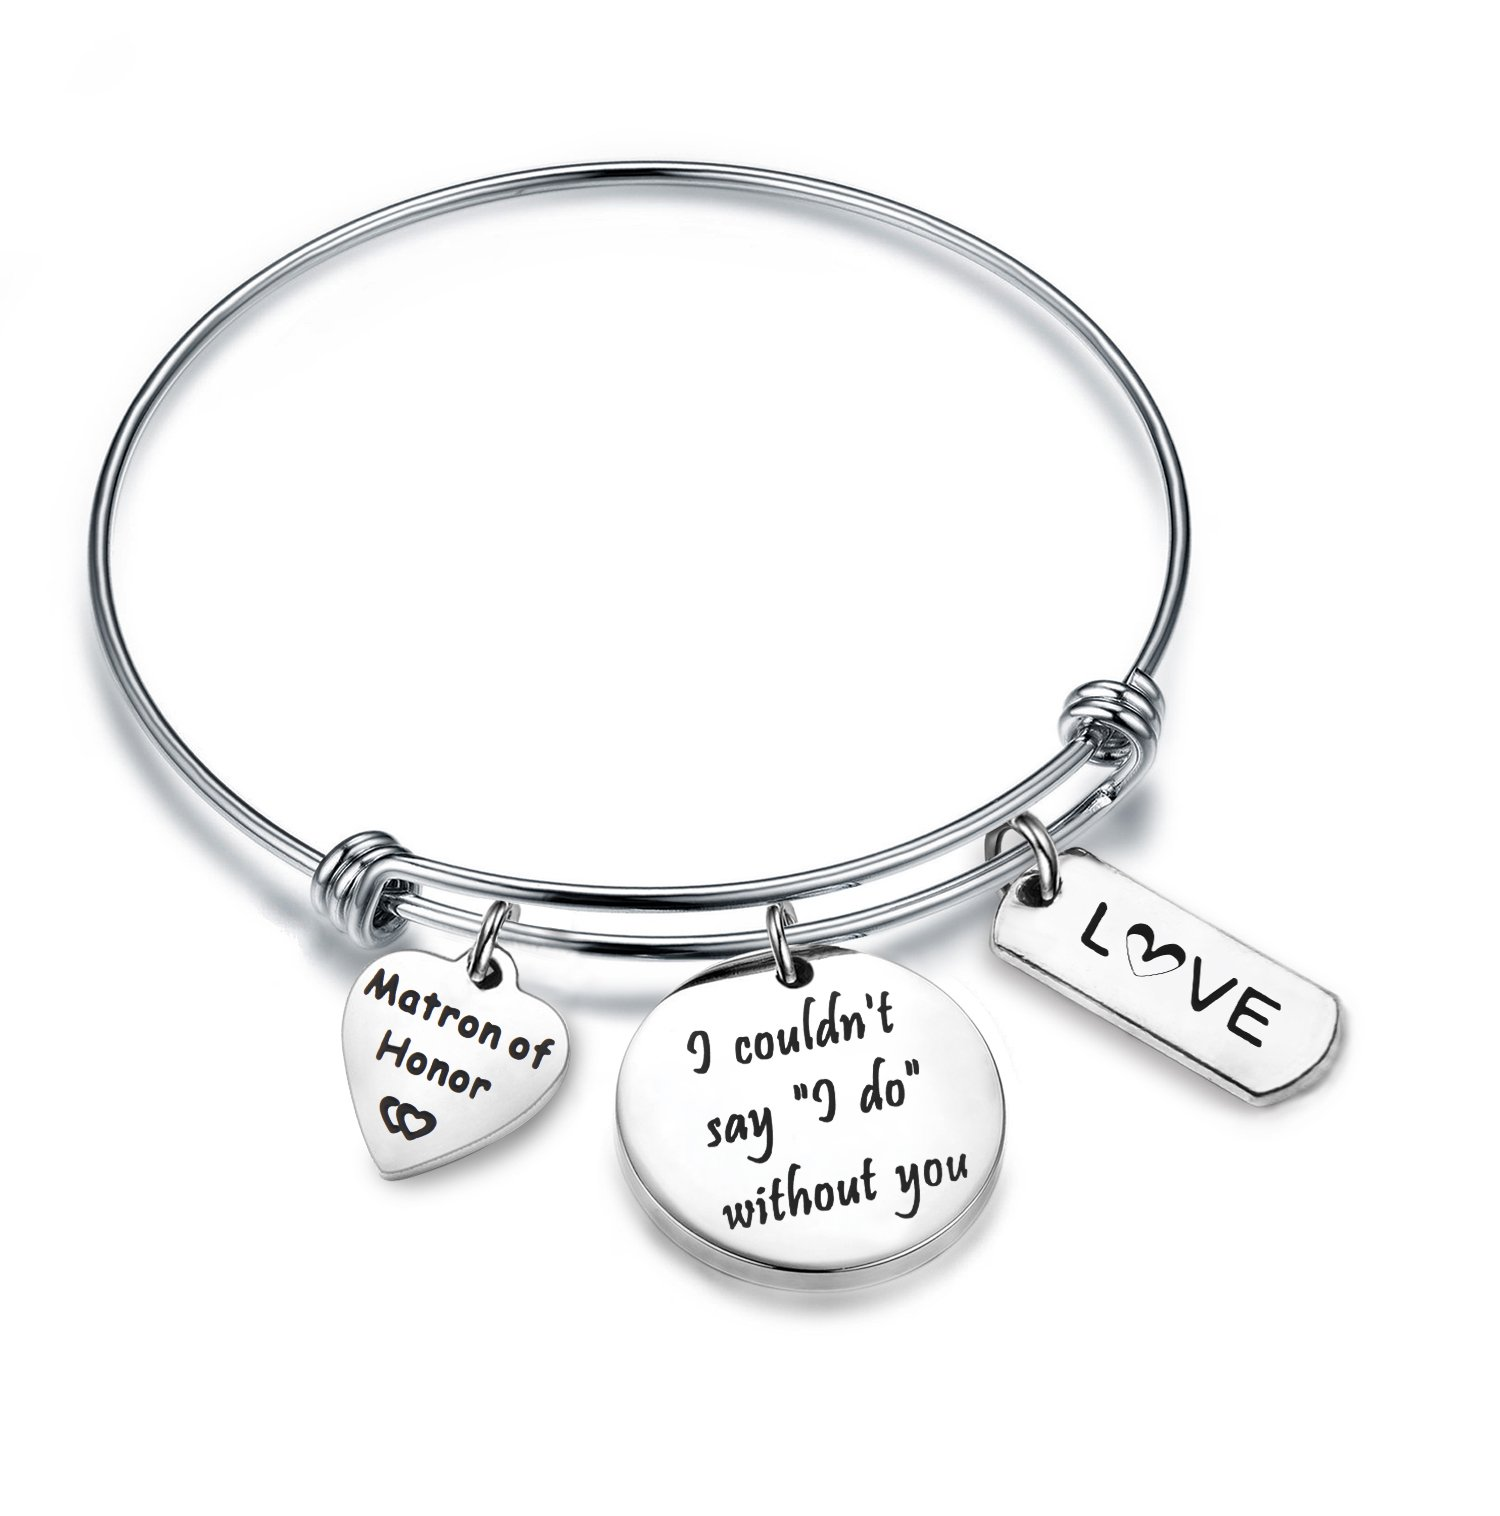 Zuo Bao Bridesmaid Gift I Couldn't Say I Do Without You Bracelet Matron of Honor Jewelry Maid of Honor Proposal Gift (Silver)